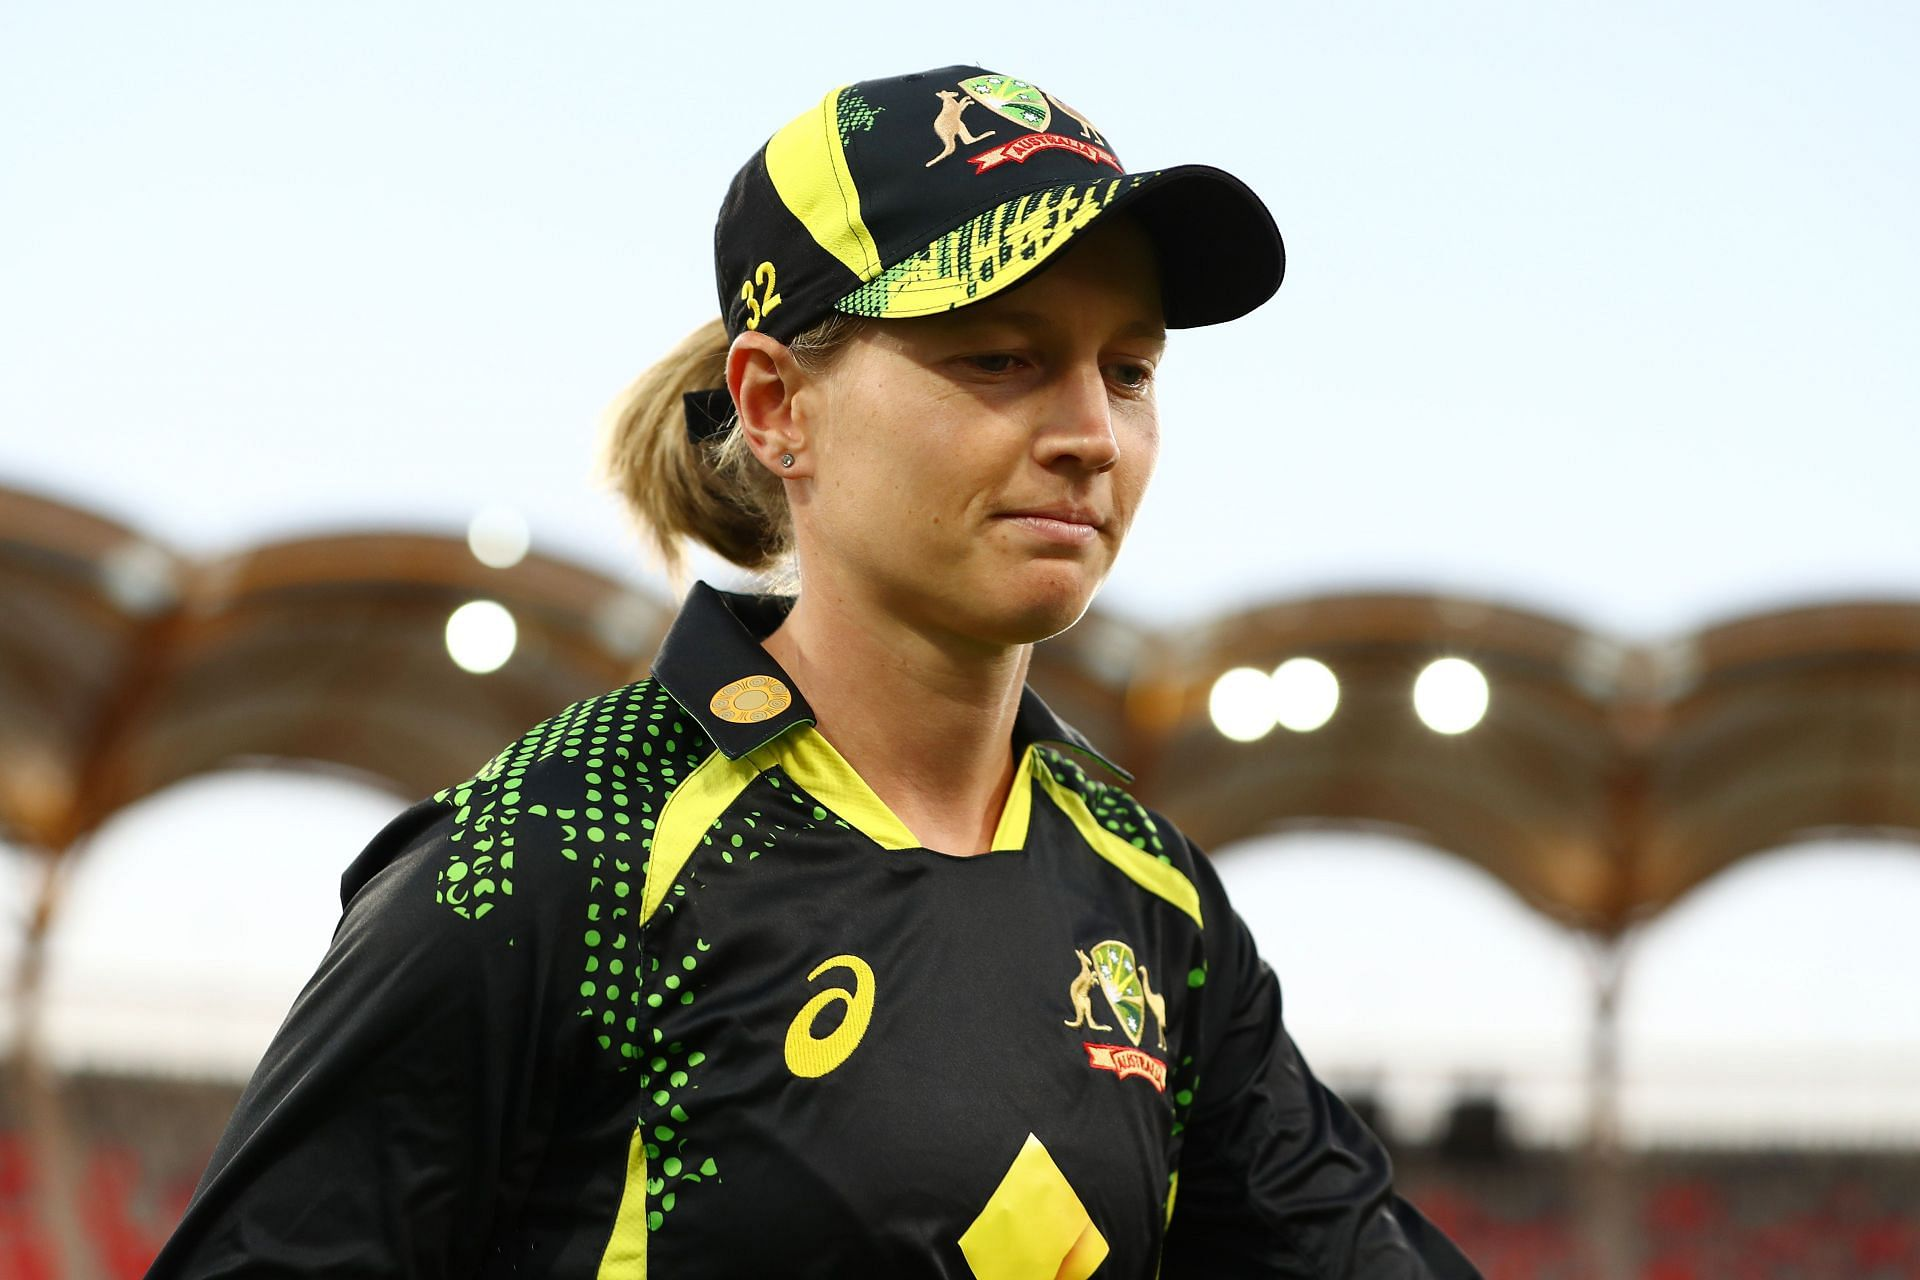 Meg Lanning is expected to play a key role for Melbourne Stars Women